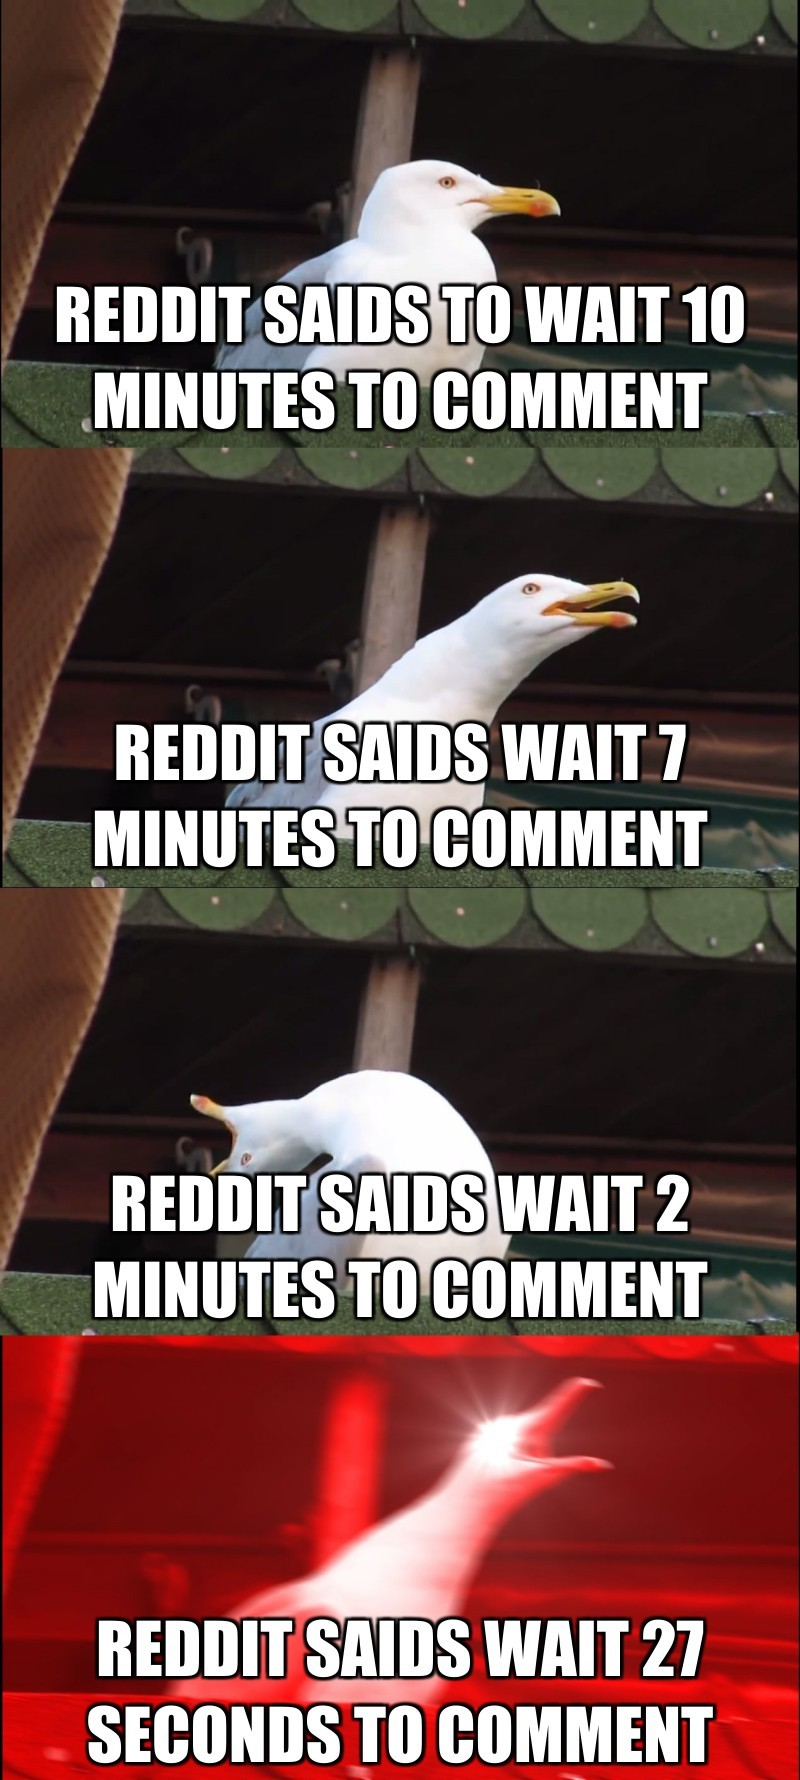 Reddit saids wait 7 minutes to comment; Reddit saids wait 2 minutes to comment; Reddit saids wait 27 seconds to comment; reddit saids to wait 10 minutes to comment